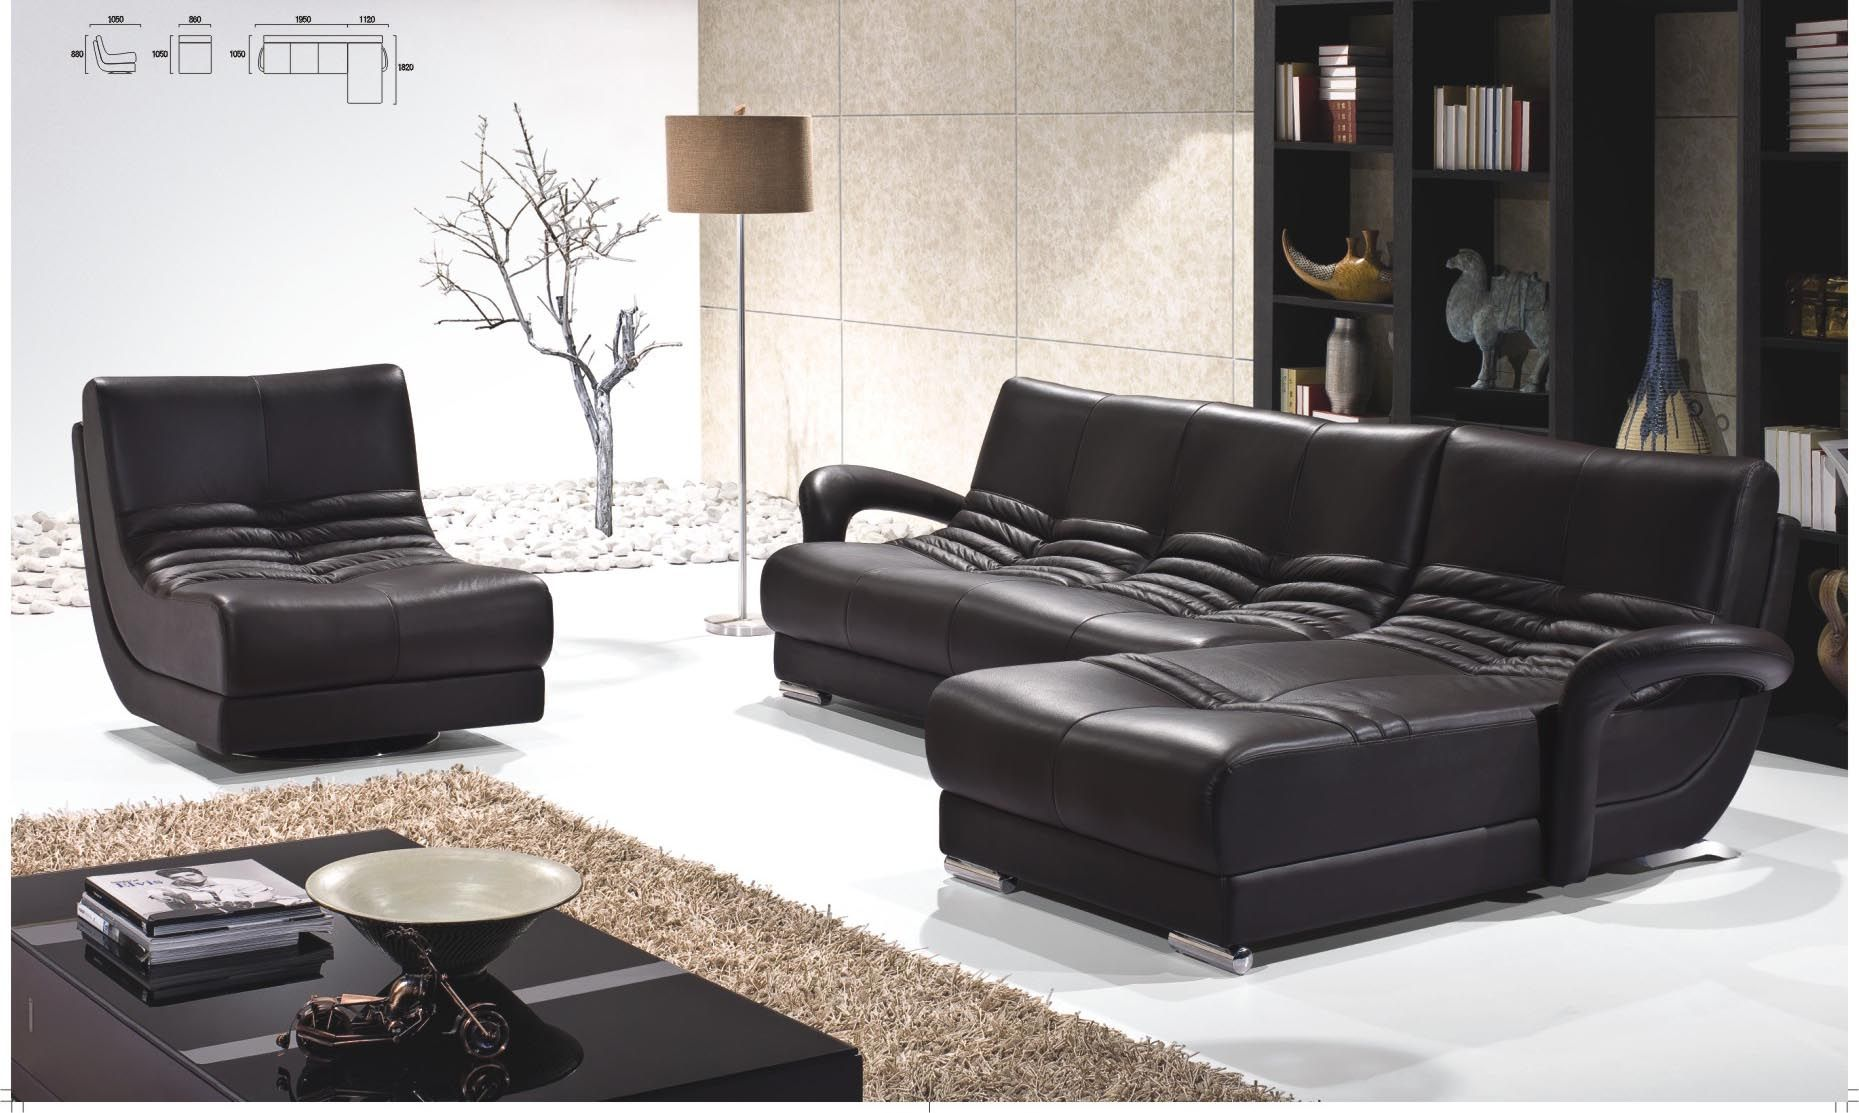 Beautiful 17 Classy And Elegant Black Living Room Furniture : Modern Black Leather  Arm LShaped Sofa Design Photo Gallery